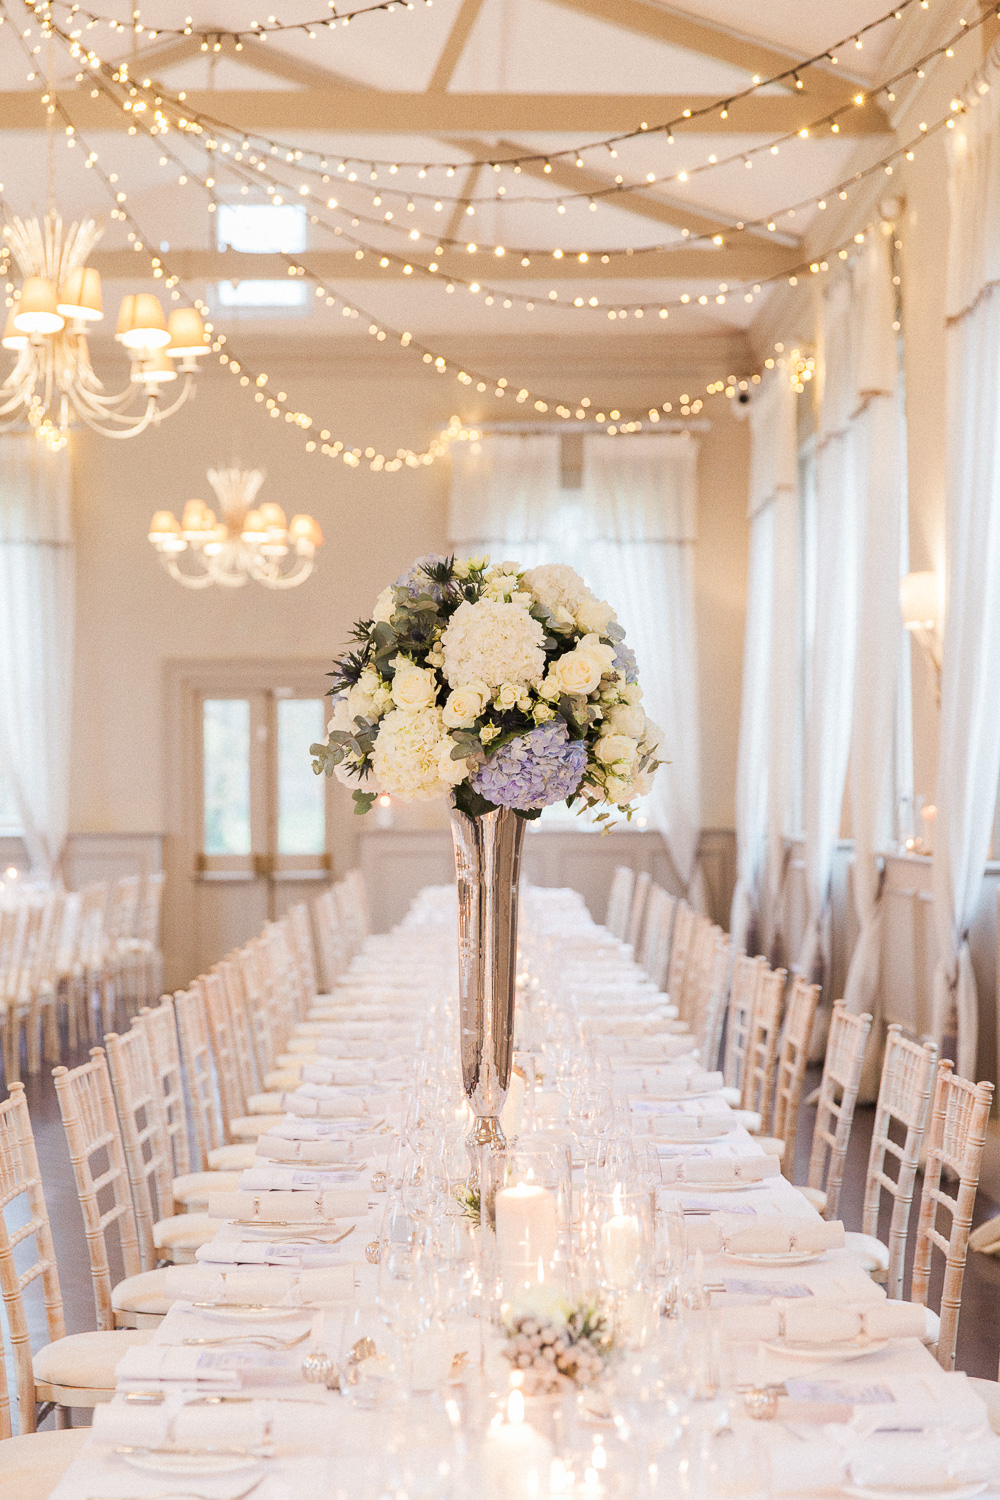 Reception table with blue and white centerpiece and fairy lights at Morden Hall wedding venue in London